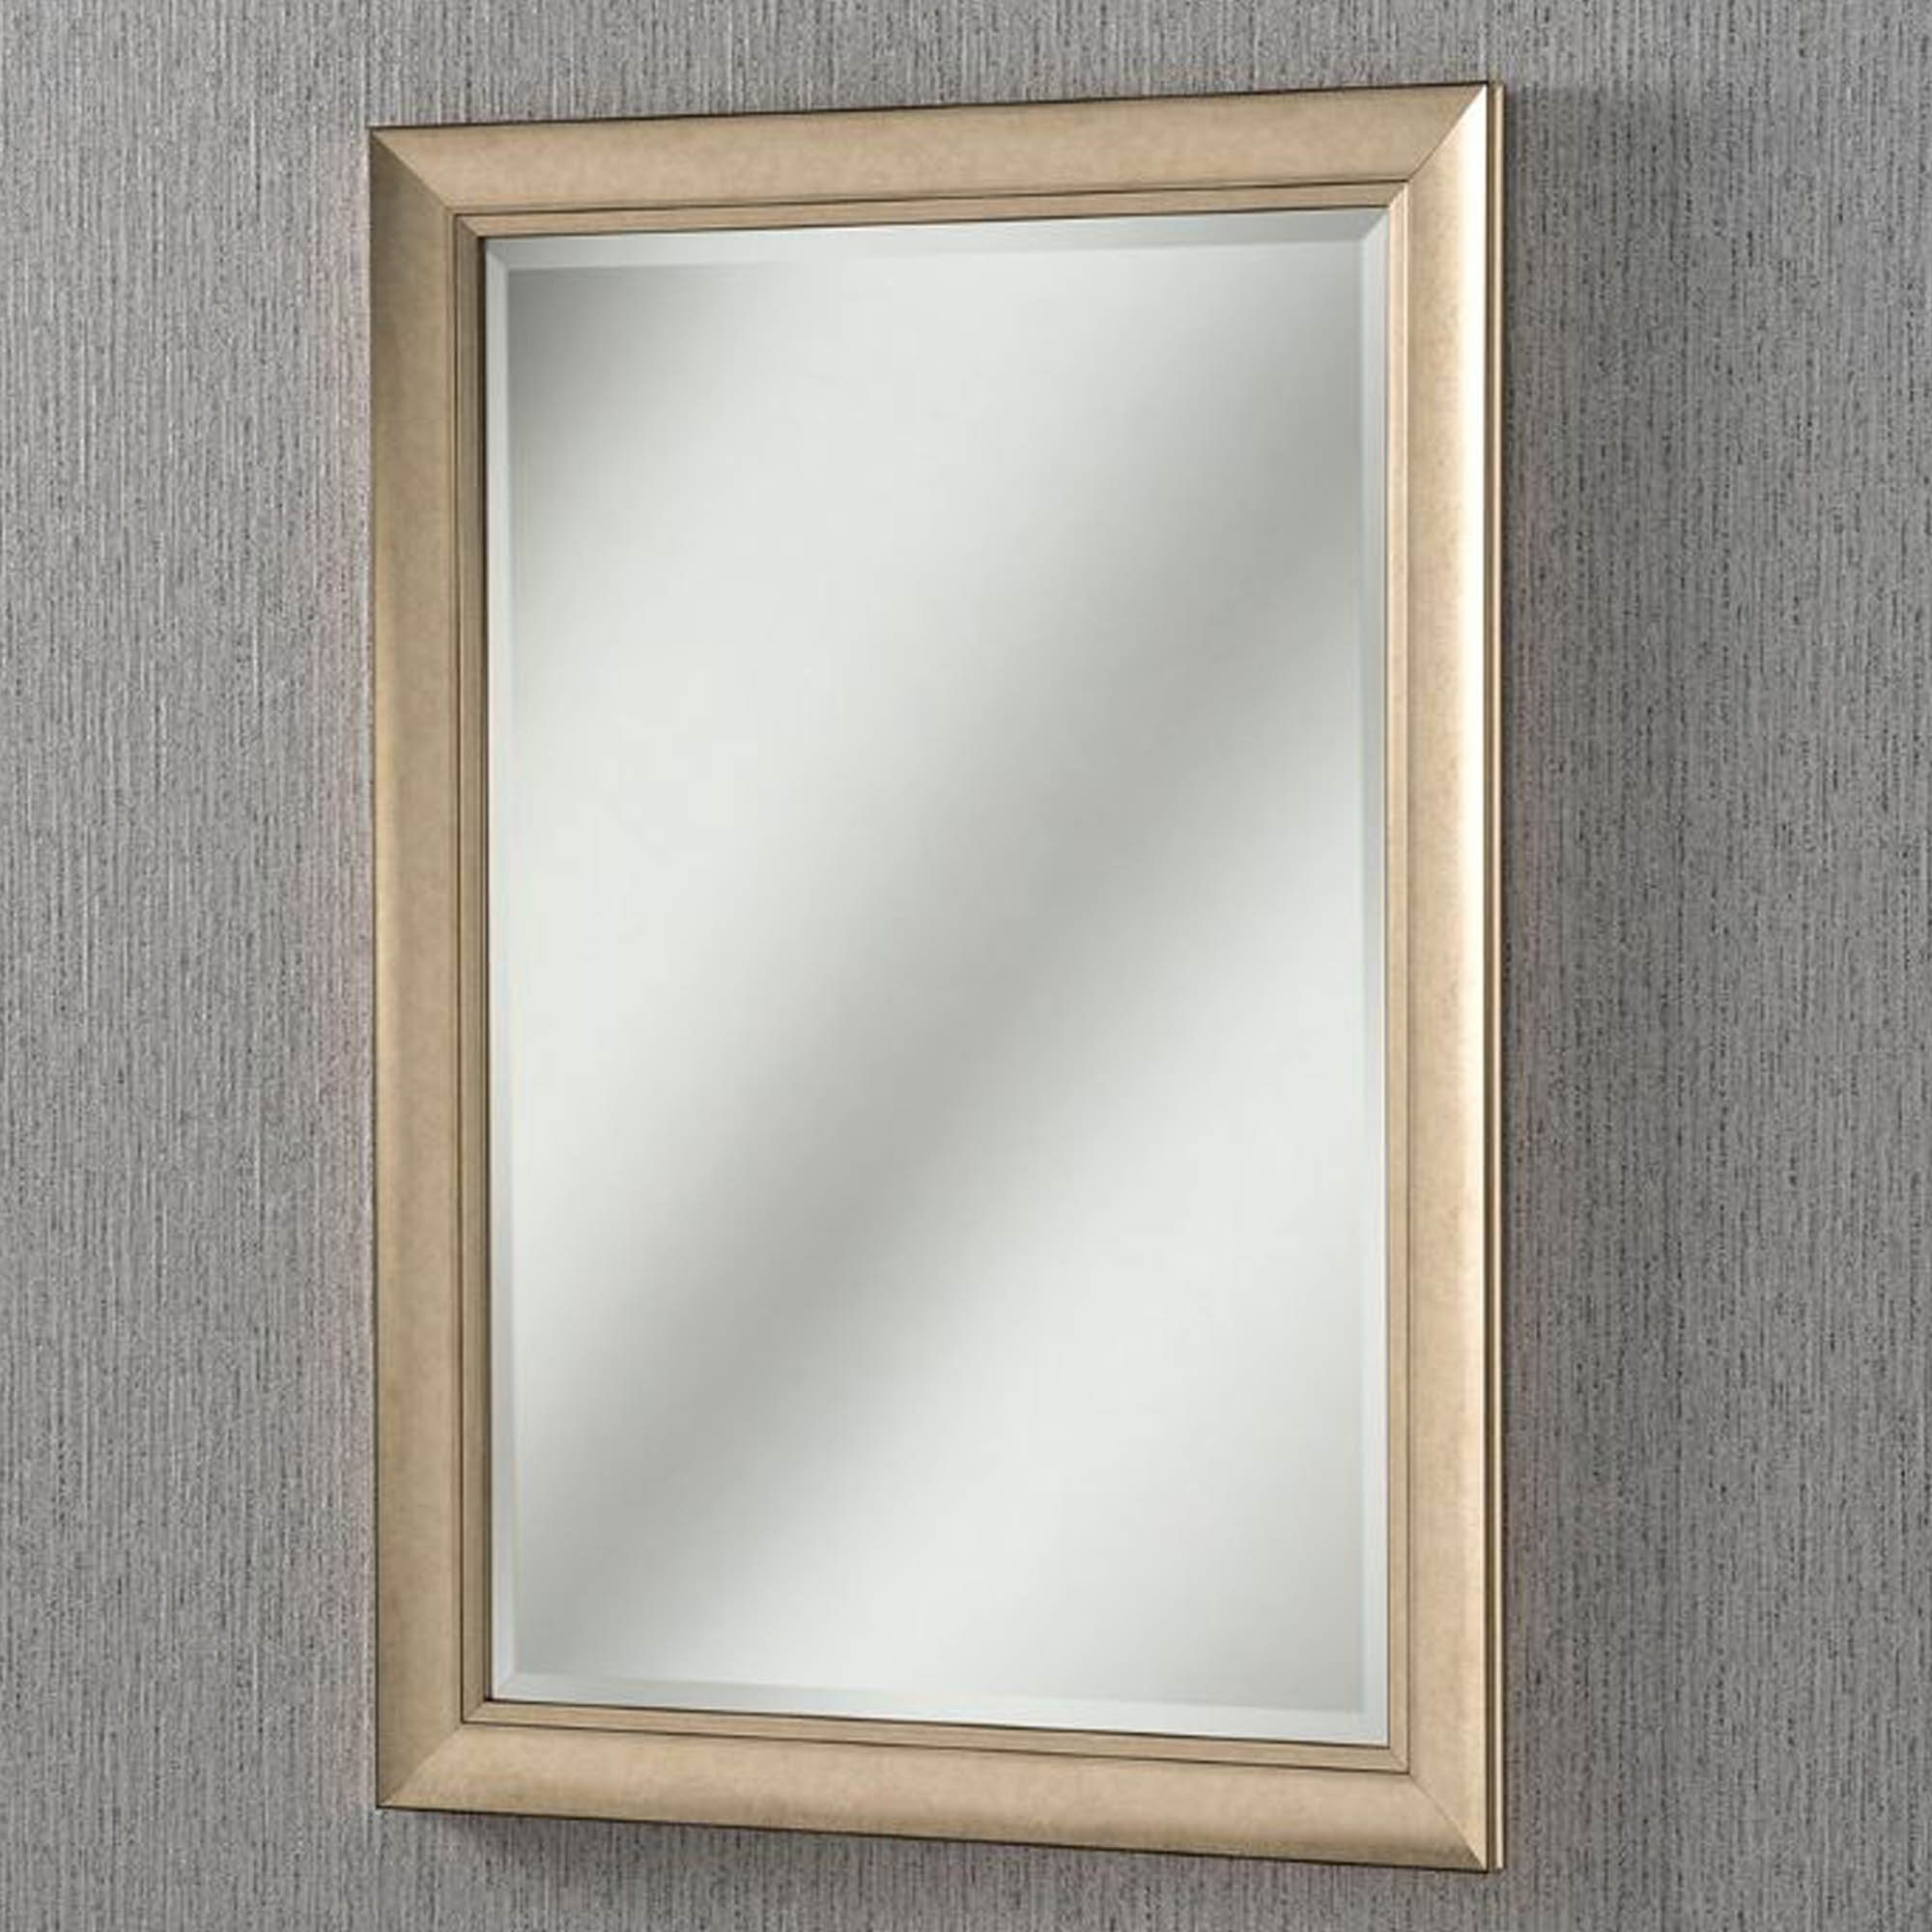 Champagne Bevelled Frame Contemporary Wall Mirror Within Latest Champagne Wall Mirrors (View 6 of 20)